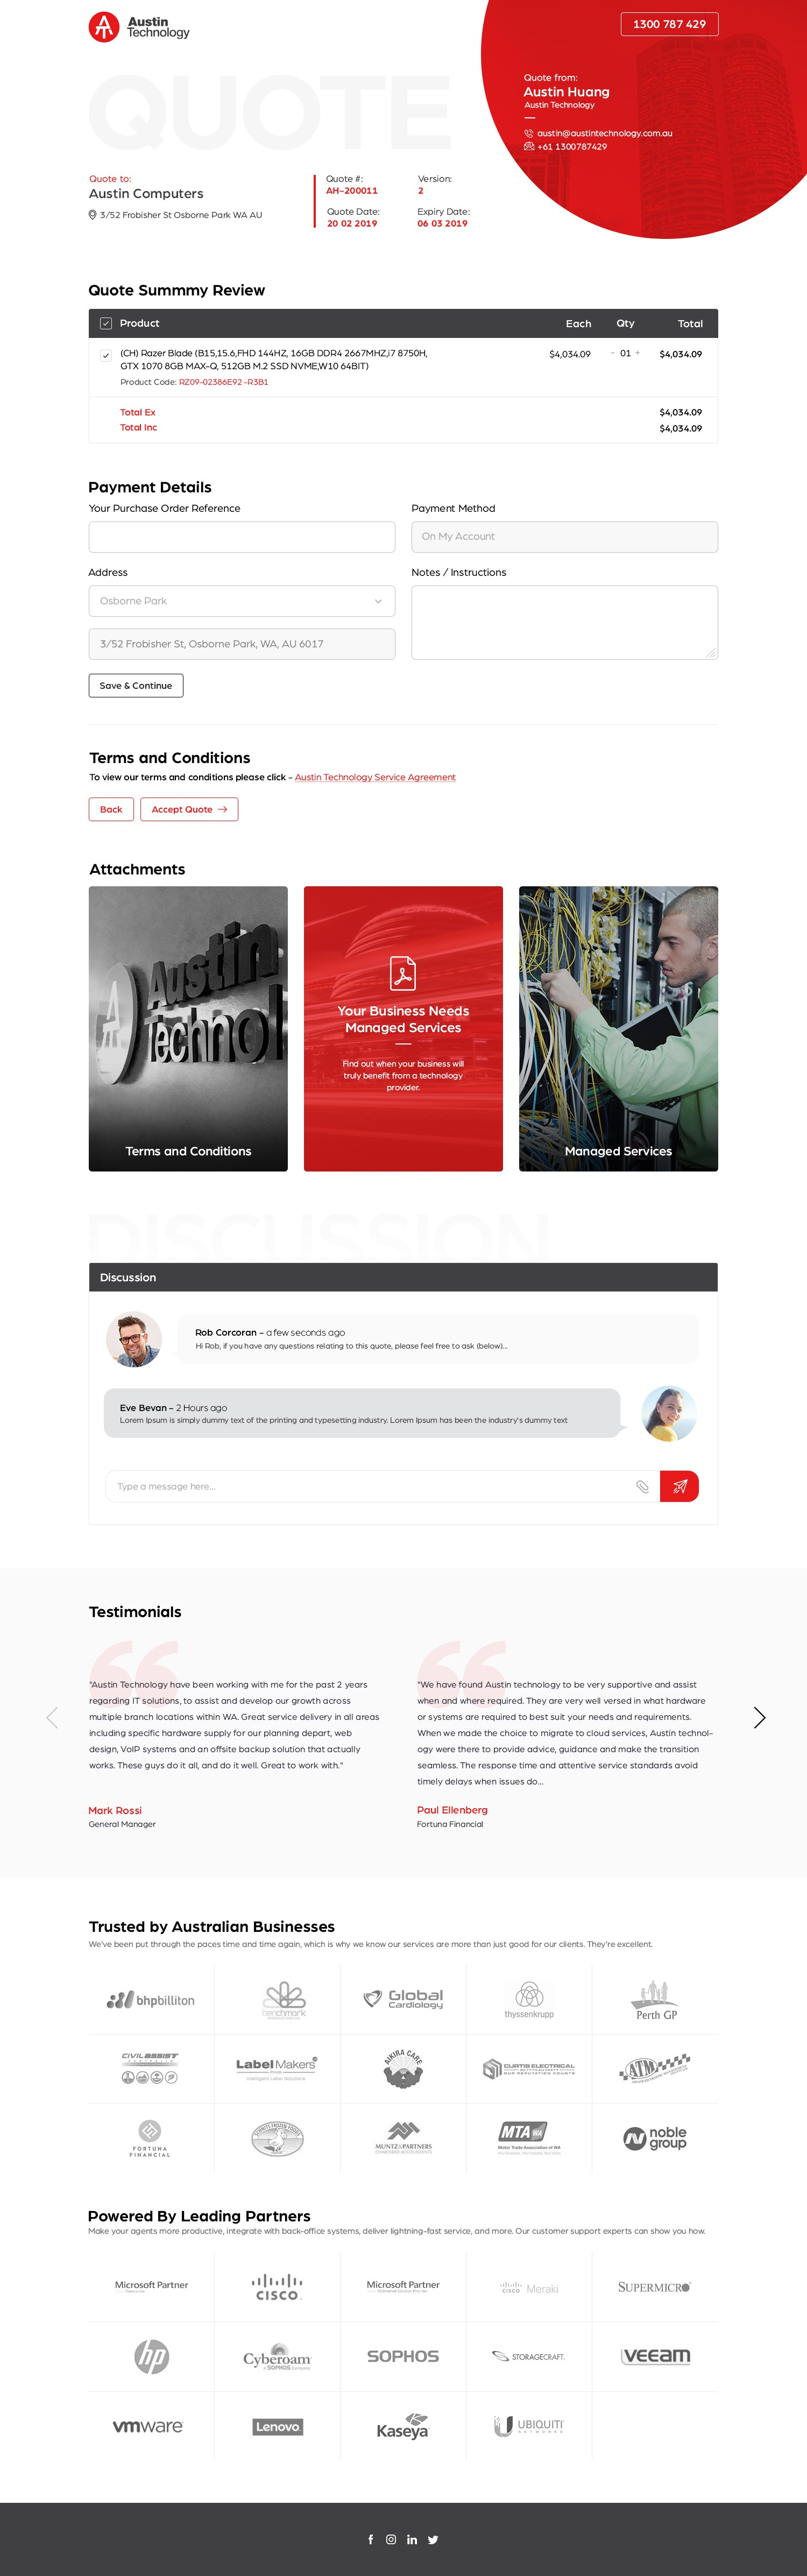 Online quote delivery page design